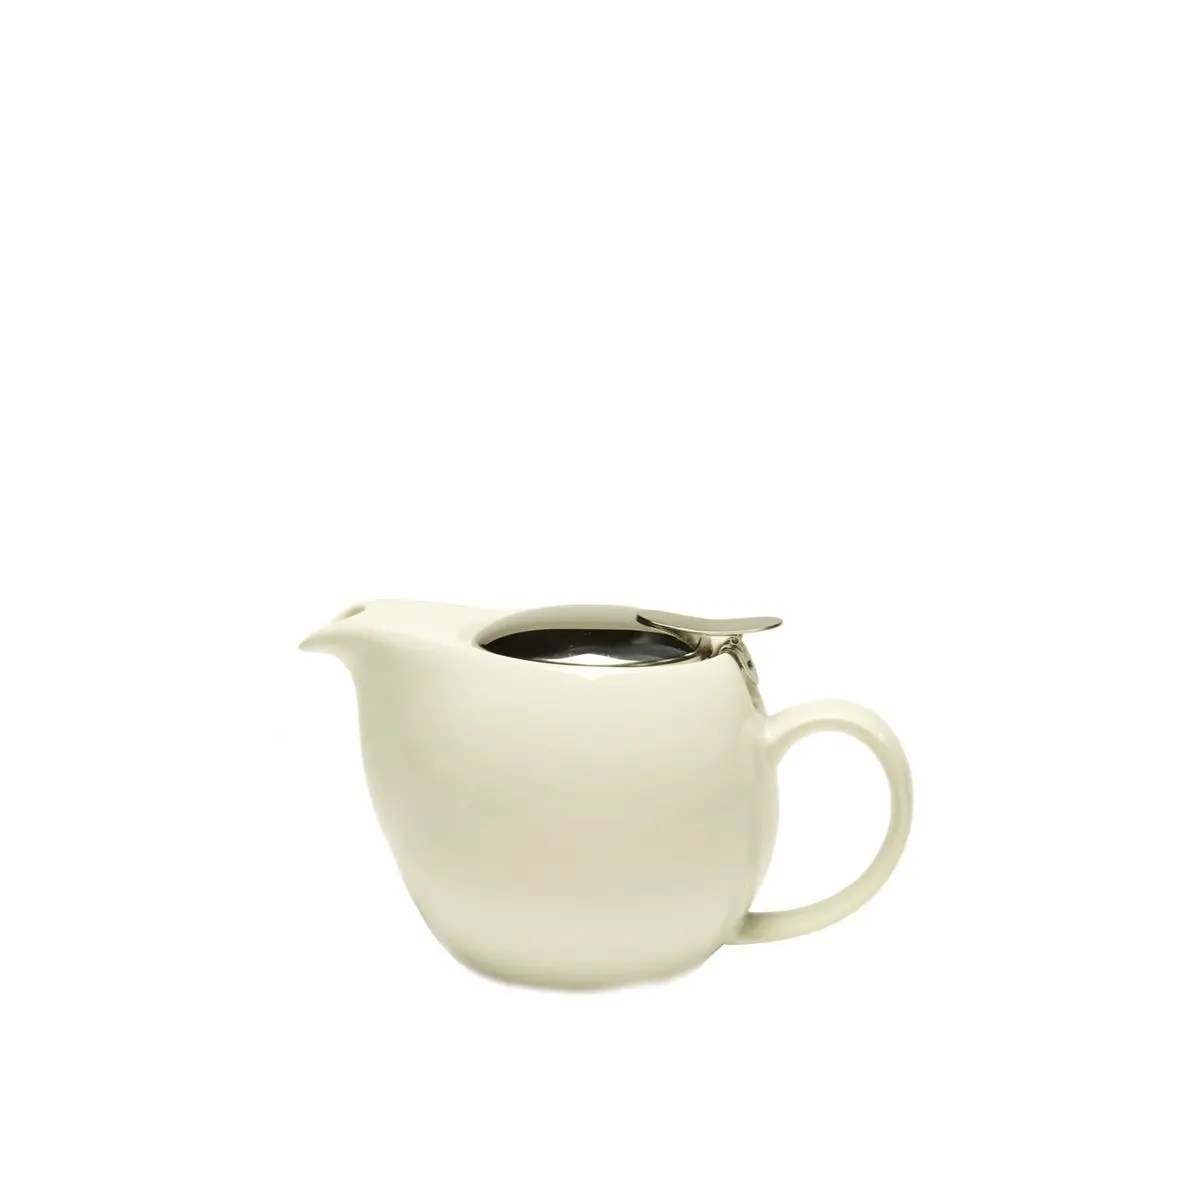 Ceramic Teapot With Infuser Service Ideas Tpcv16wh Oval White Ceramic Teapot With Lid